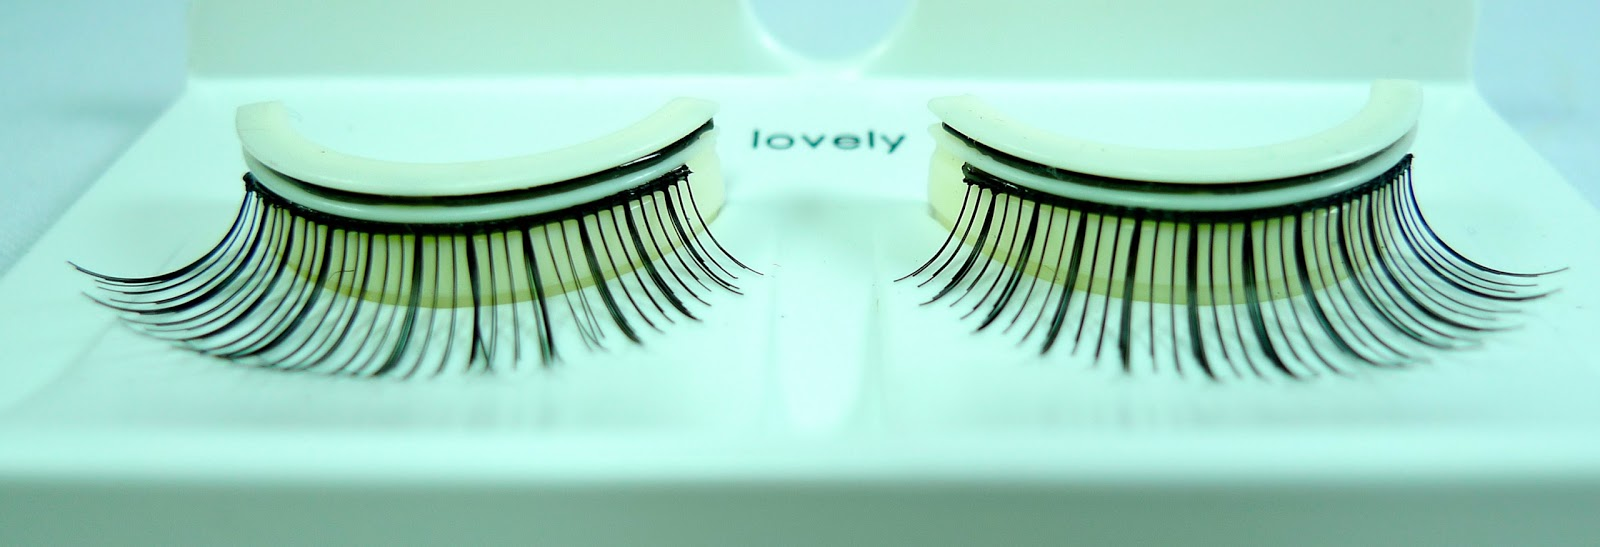 Review Seowoo 3s Pre Glued Lashes The Beauty Junkee